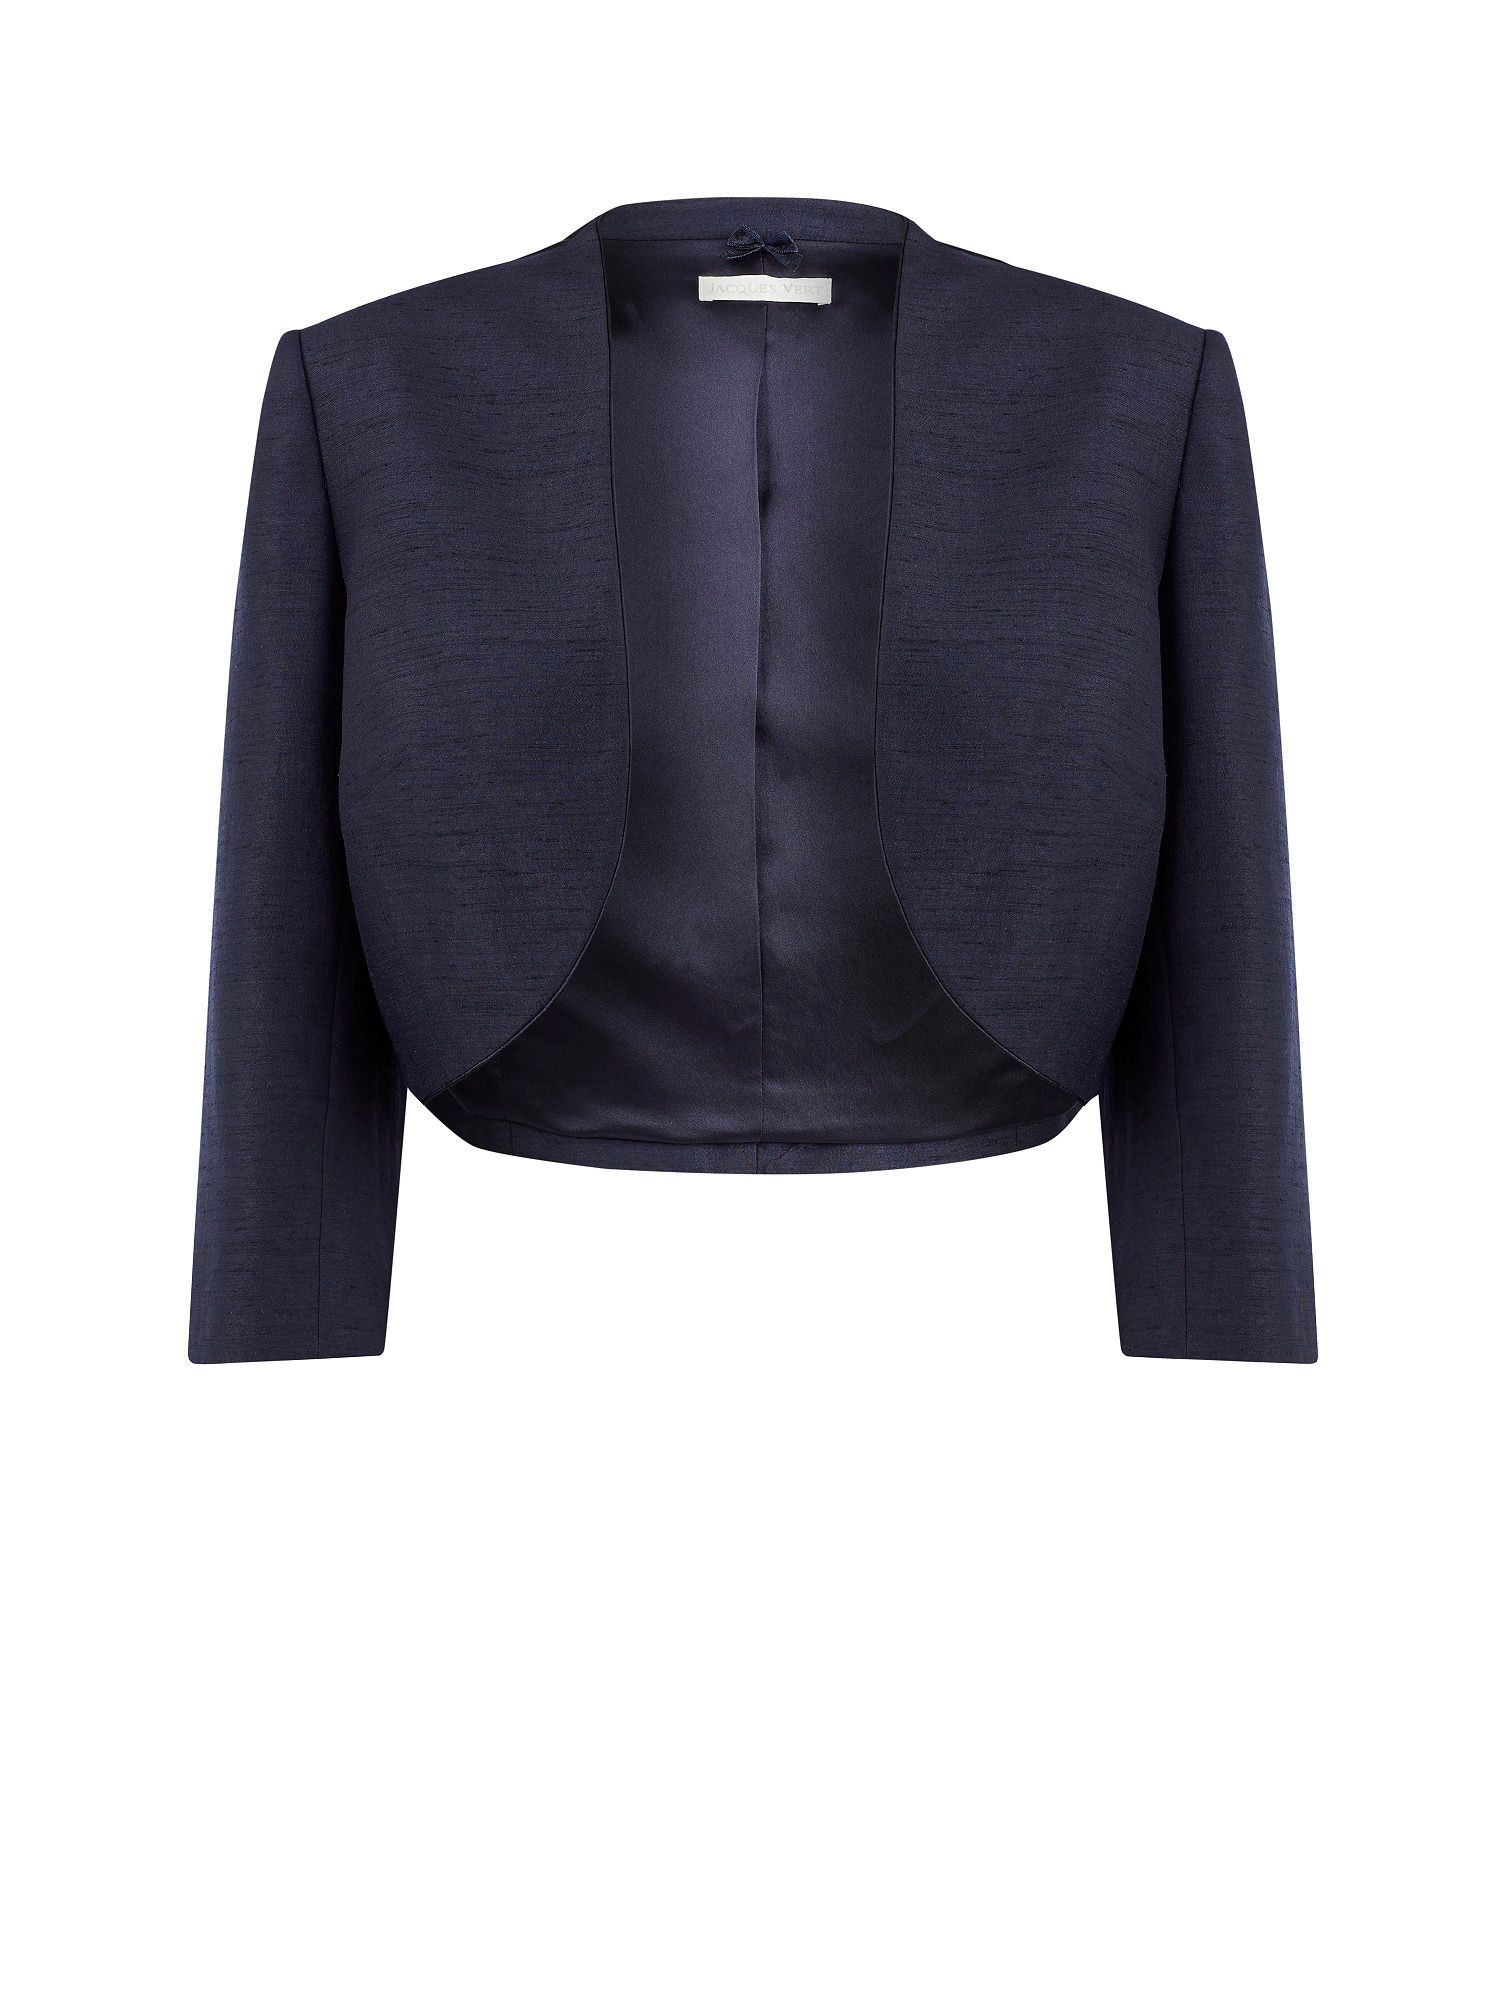 Navy edge to edge bolero